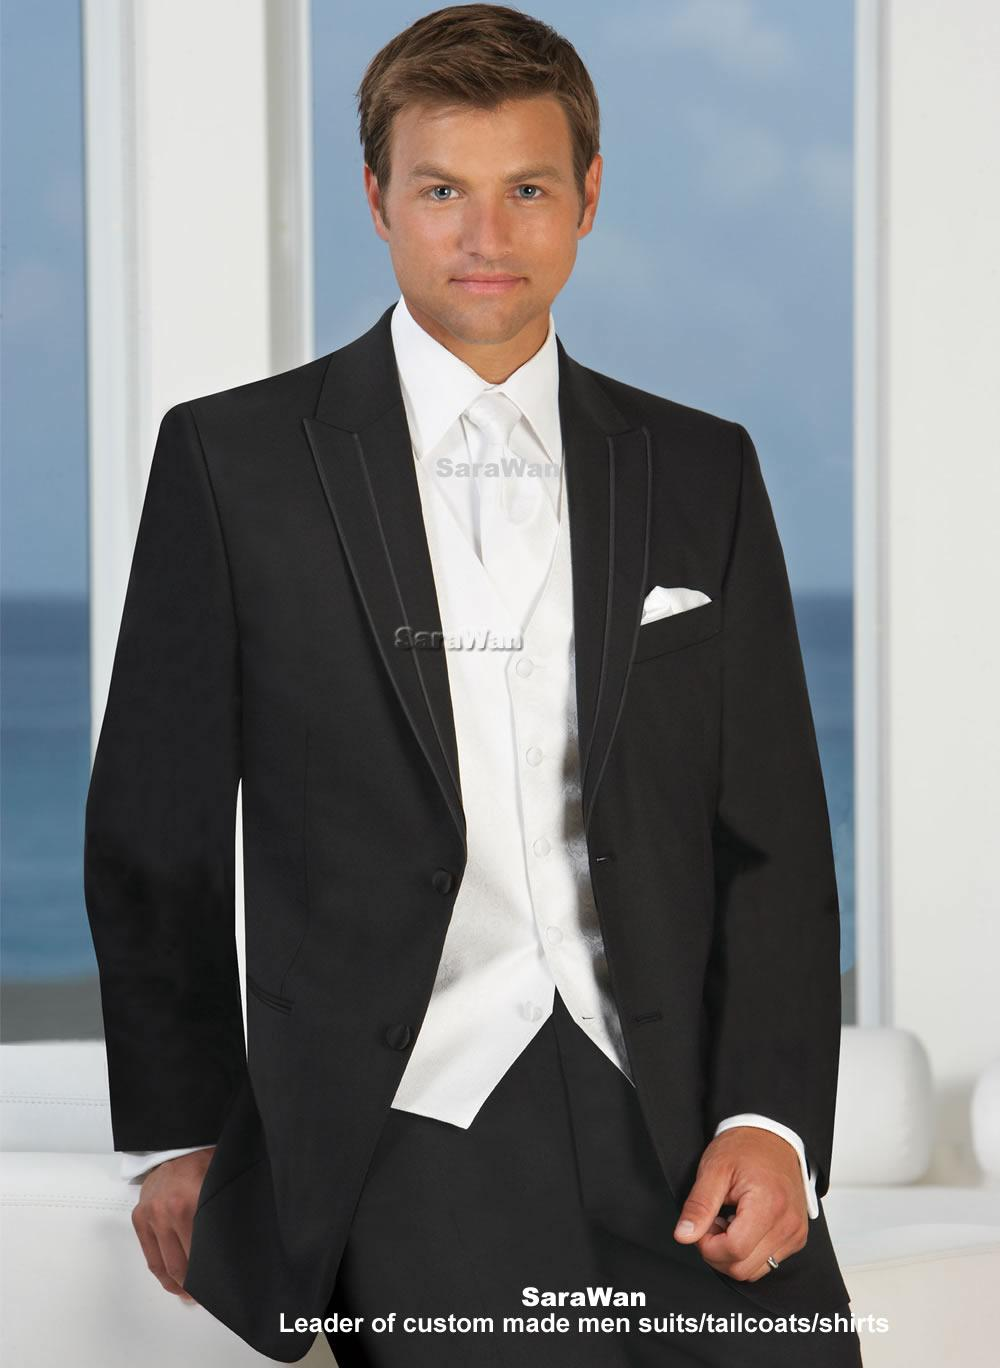 Wedding Groom Tuxedo custom made groom tuxedo bespoke black suits with white vest waistcoat tailor made